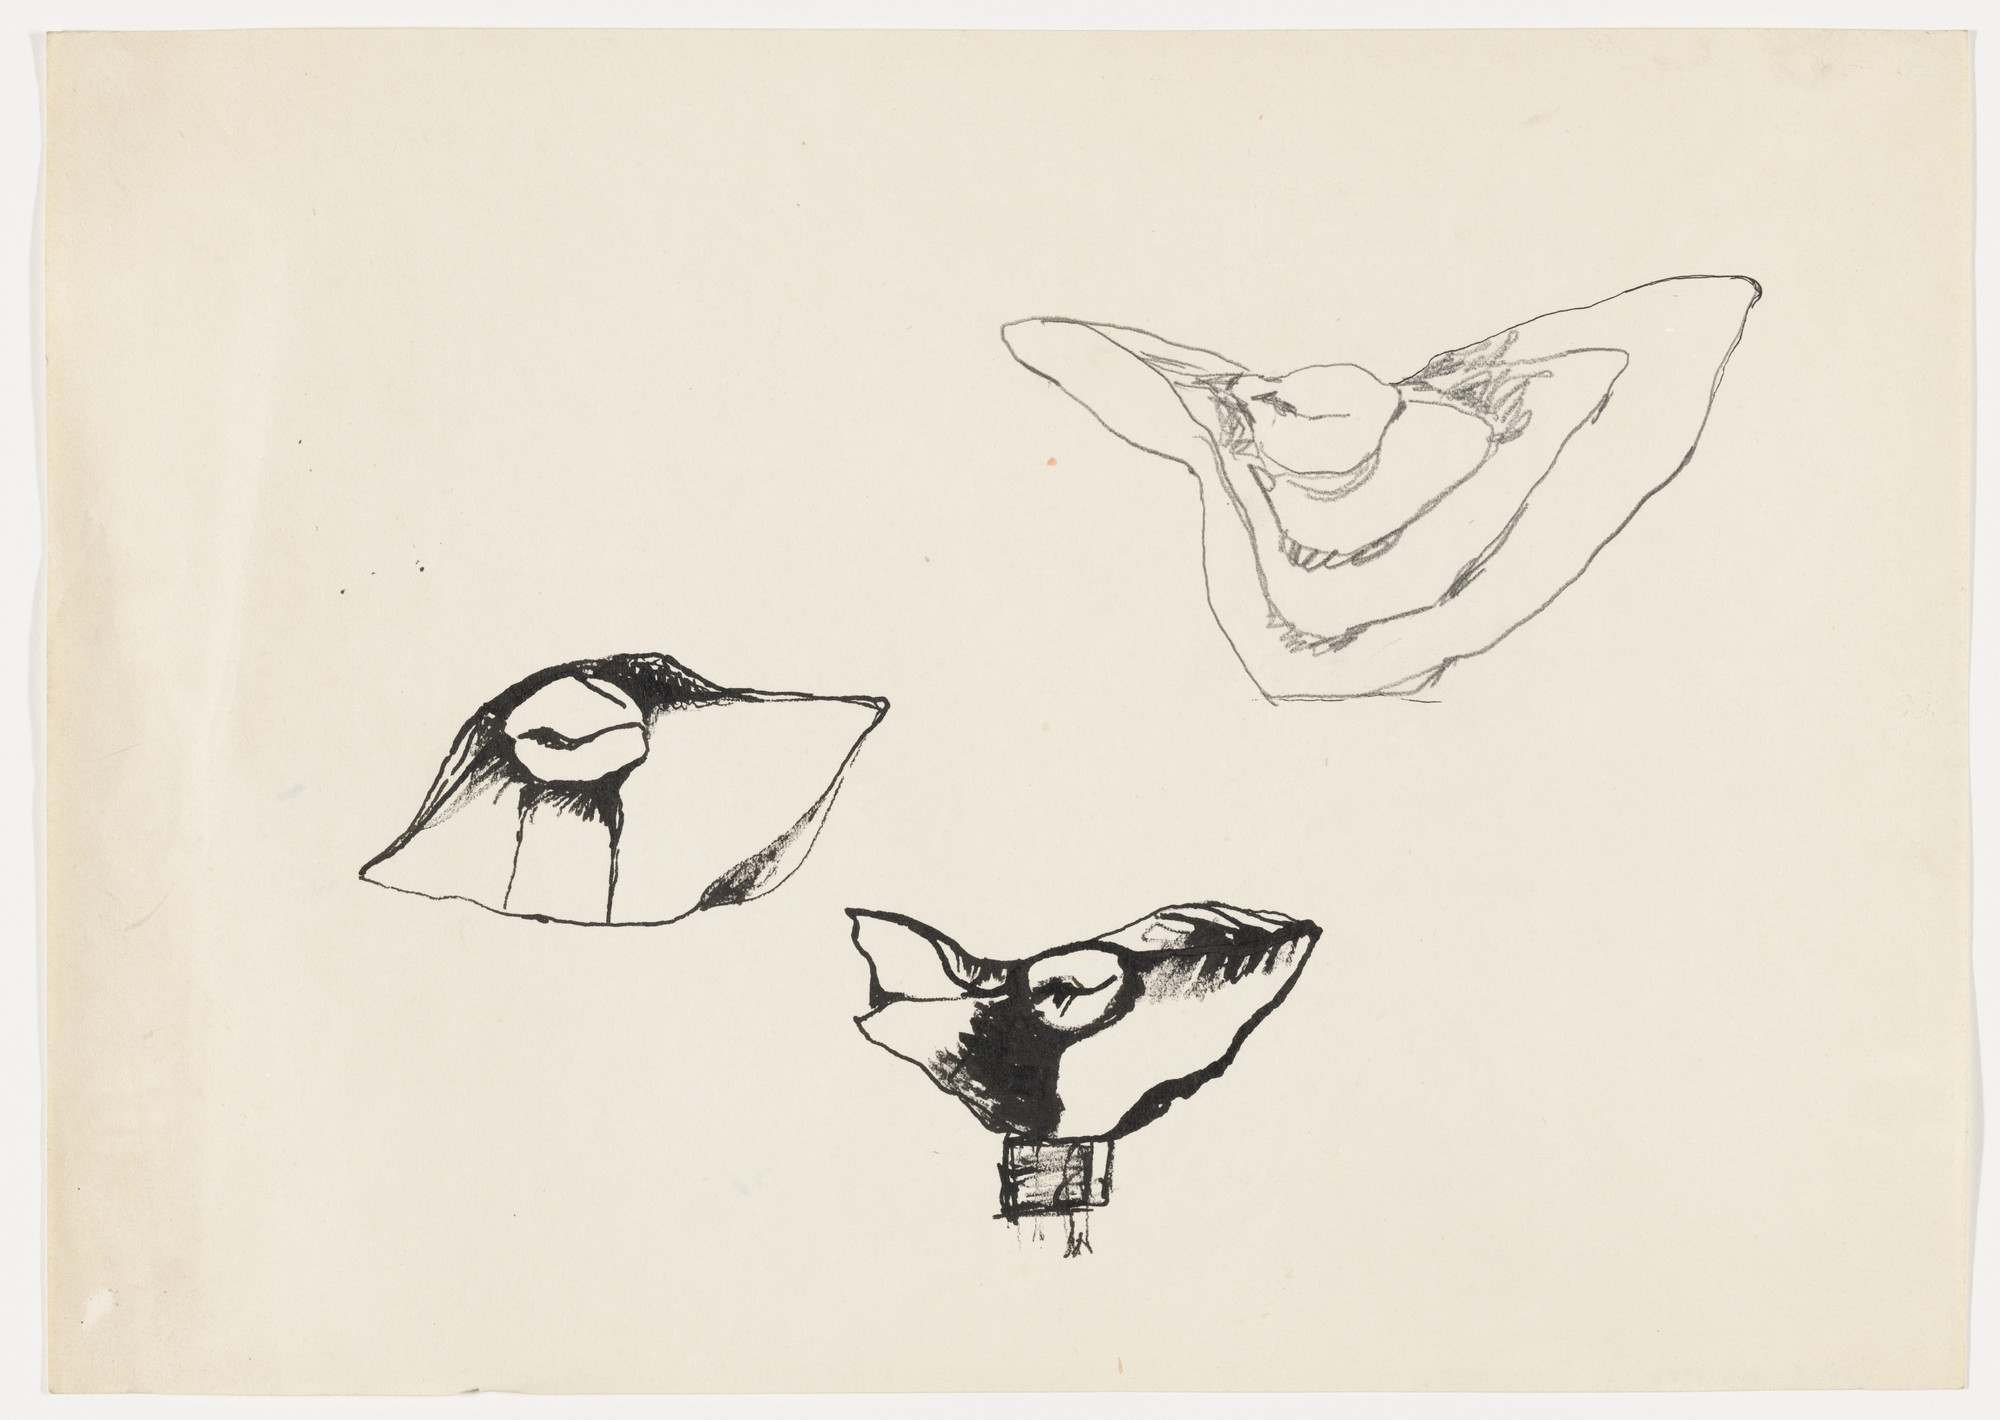 Alina Szapocznikow. Untitled (Sketch for the Sculpture Metamorphoses 1 [Przemiany 1]). c. 1961